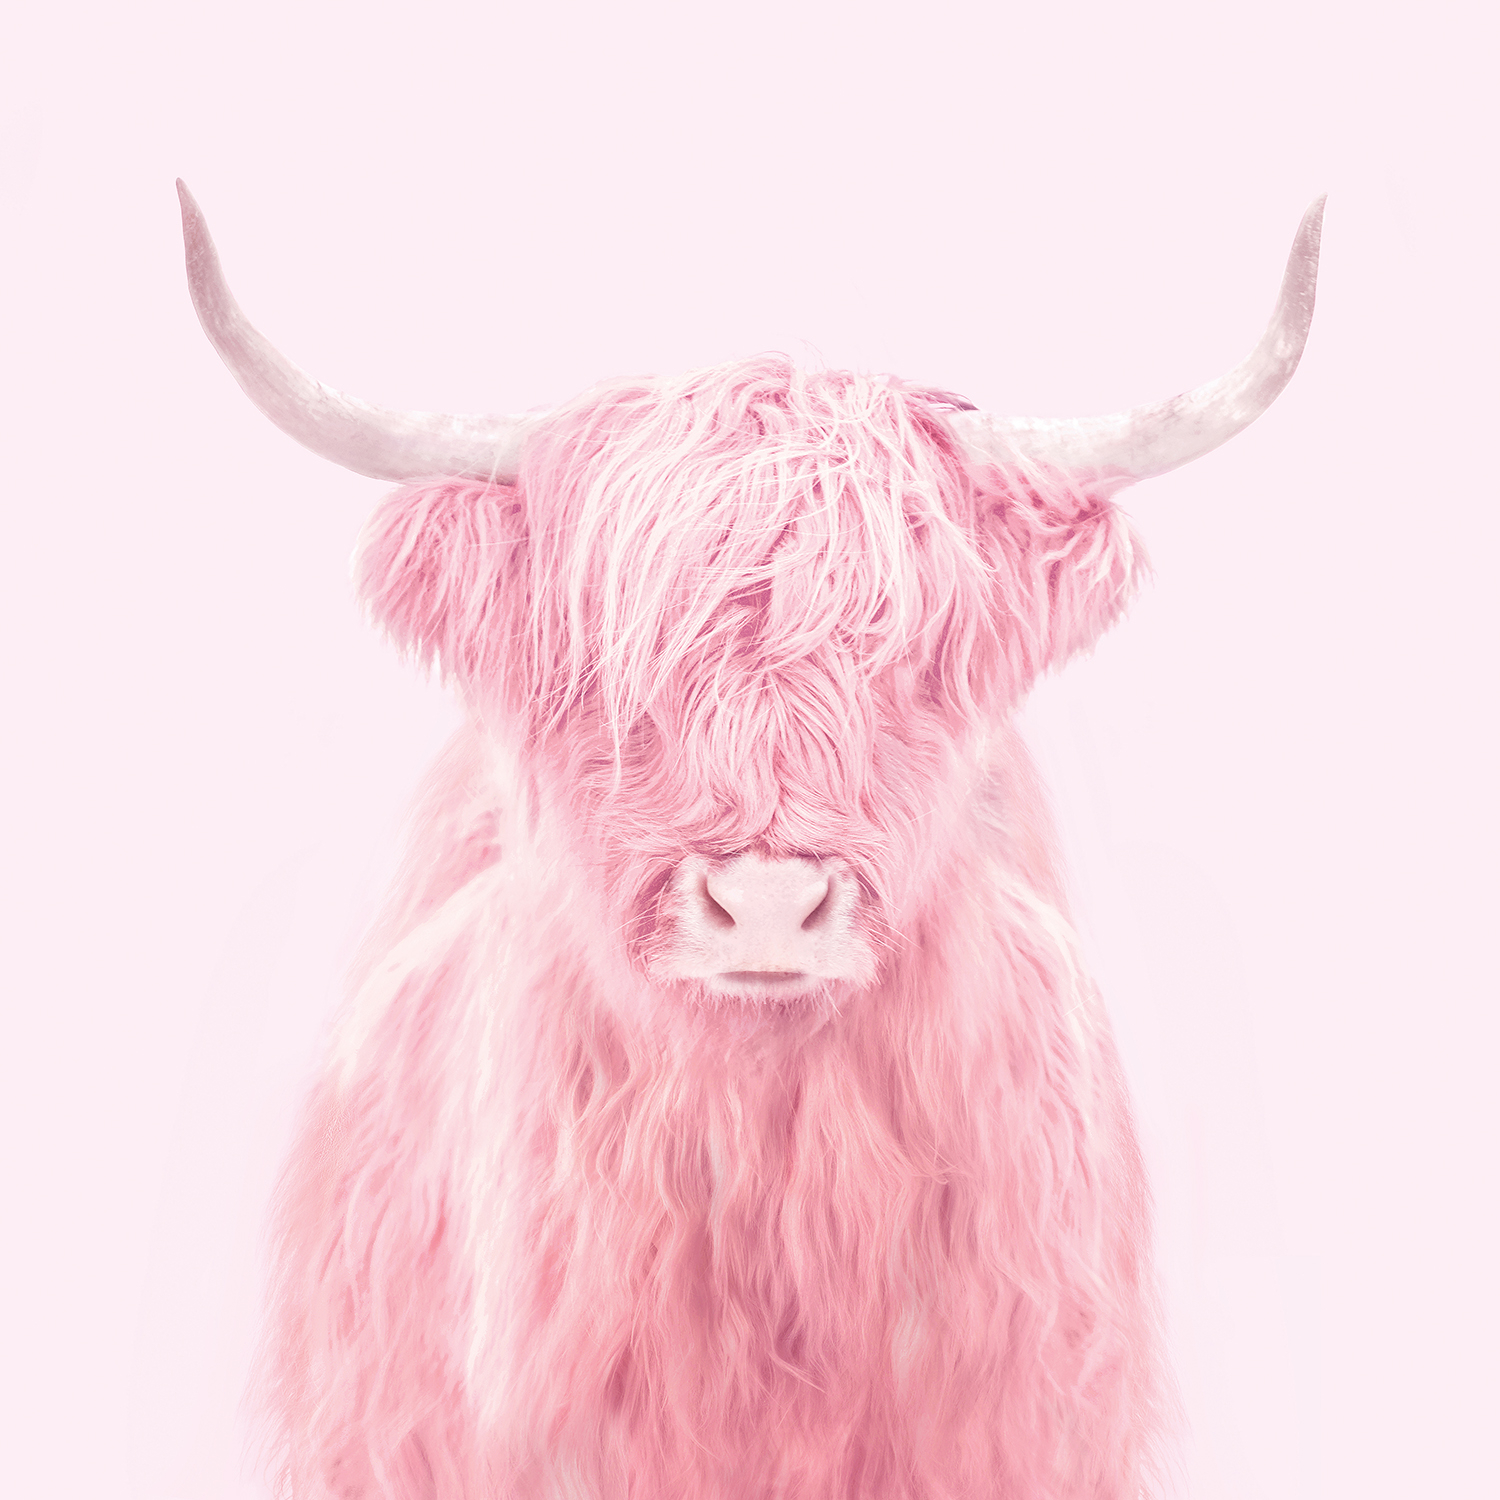 Photo of a highland cow with hair covering its eyes in a pink color tone